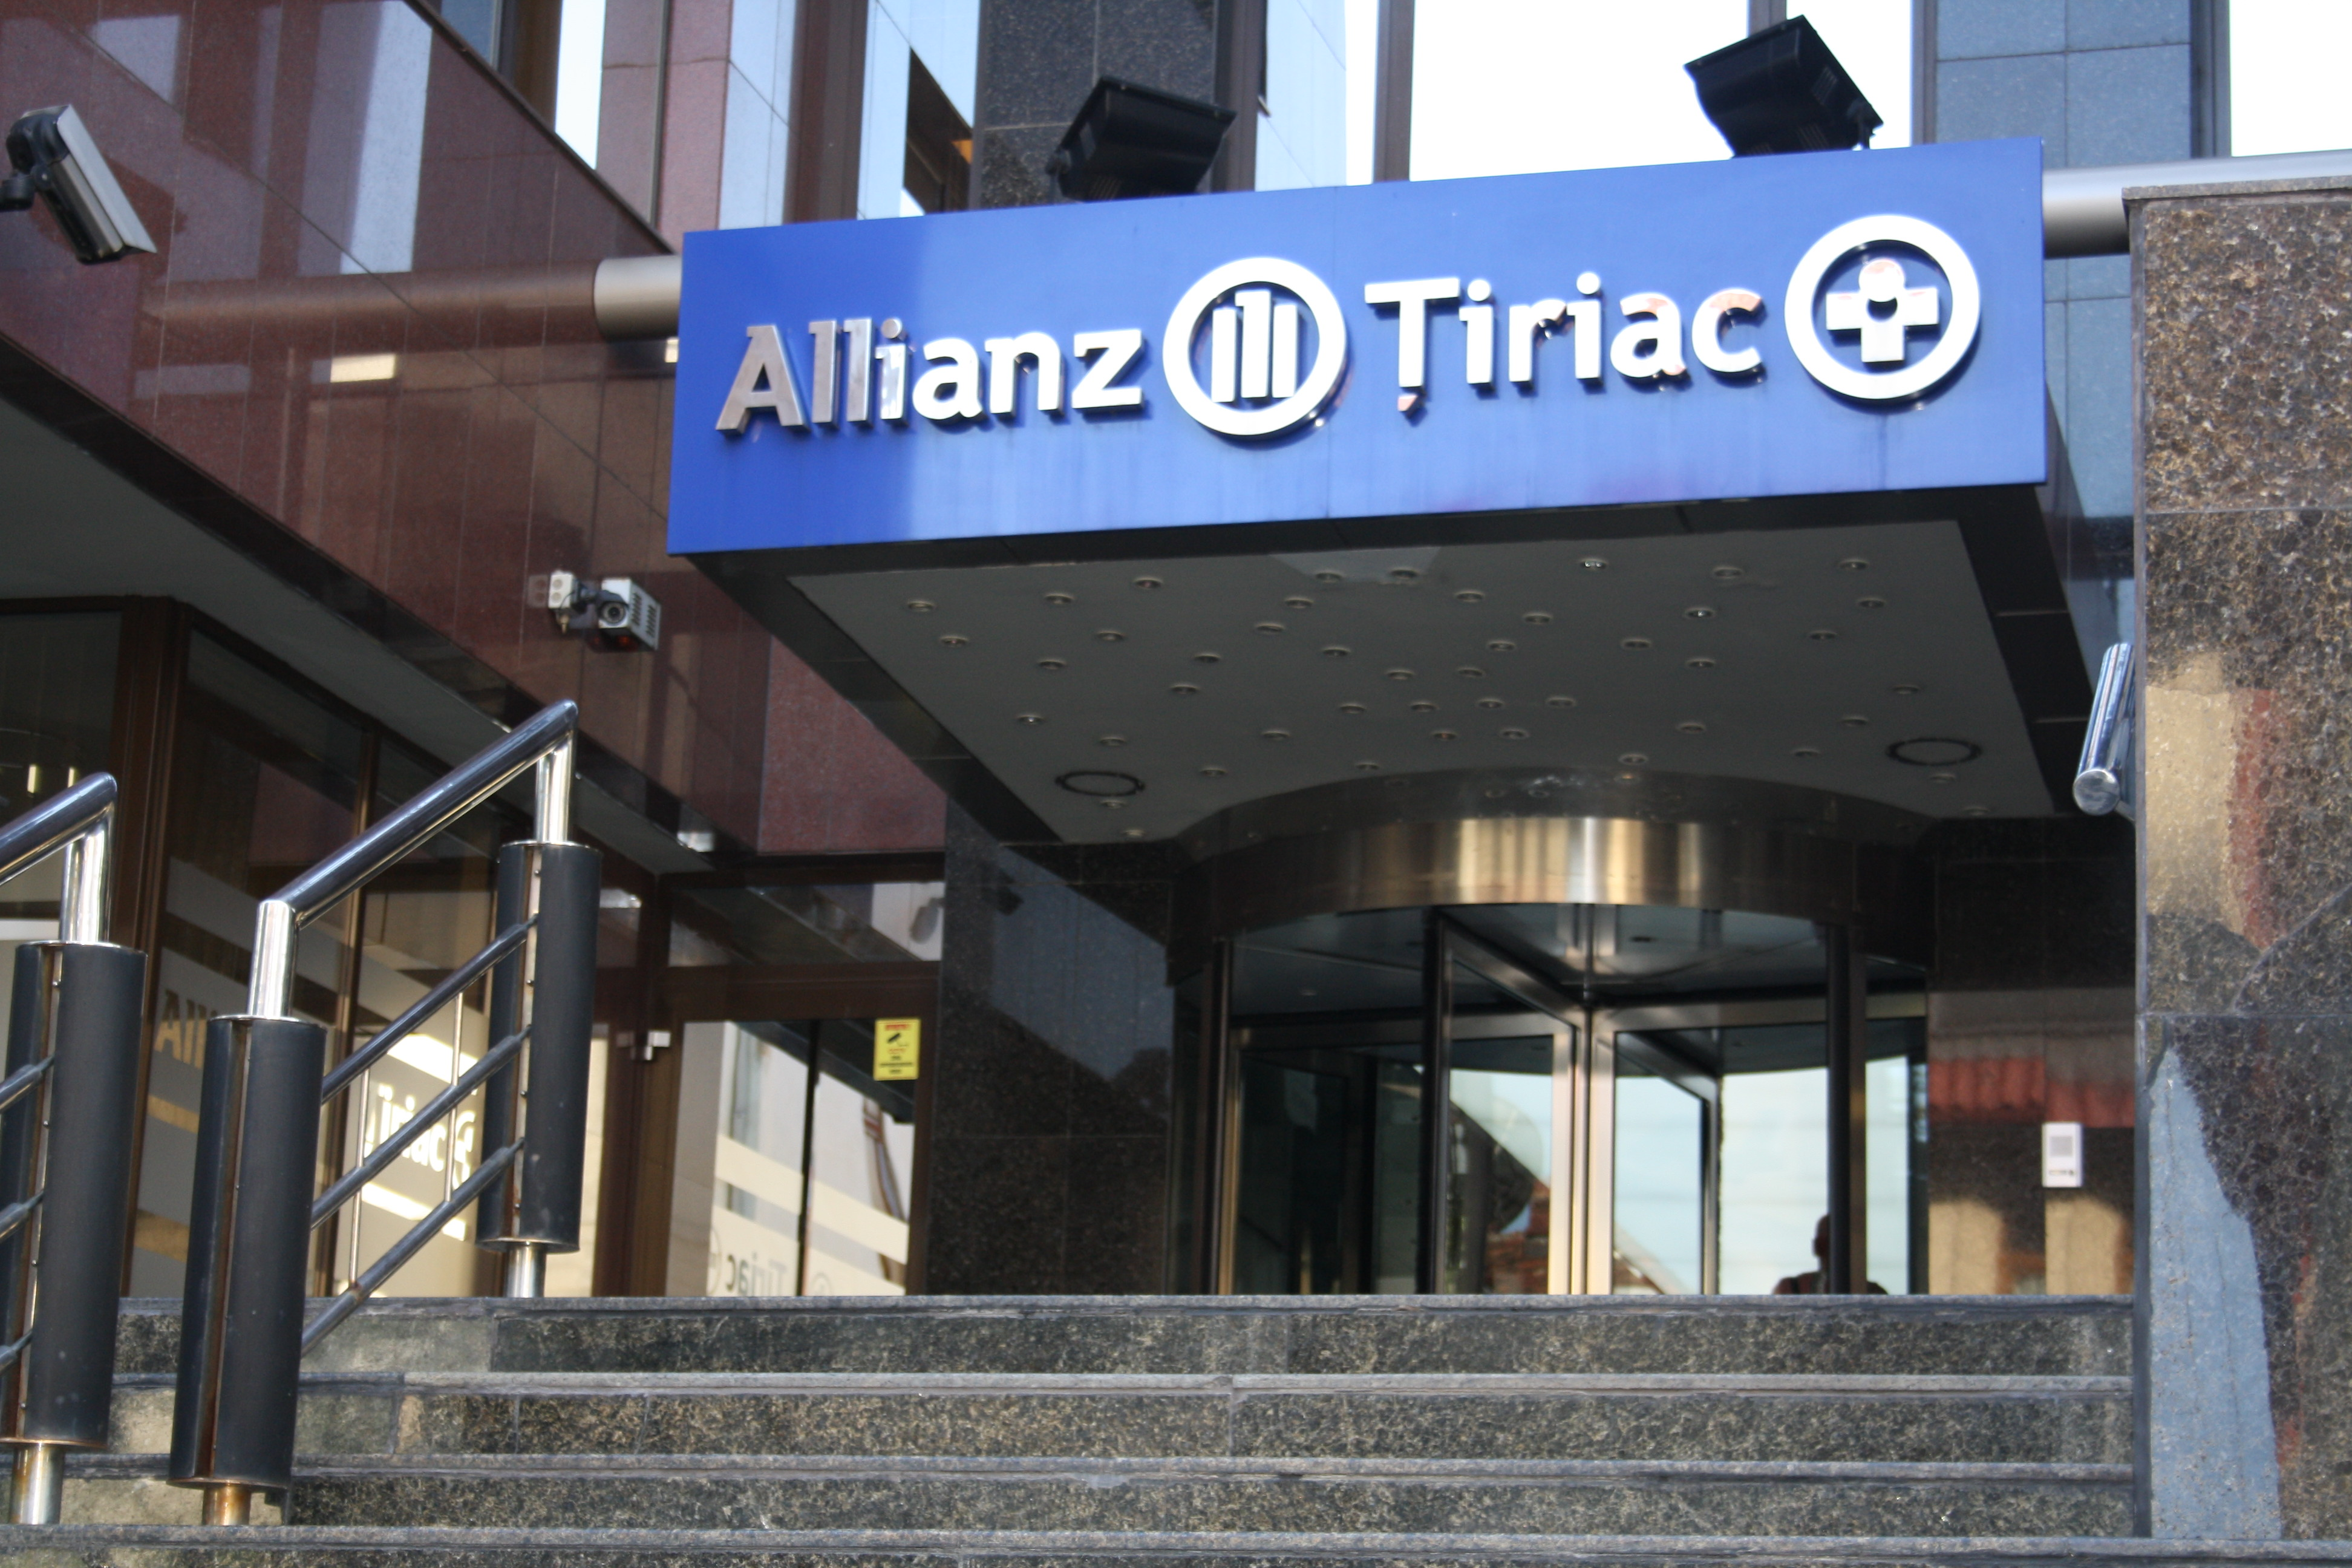 Allianz-Tiriac in H1 2020: Turnover above expectations and the care for people as main concern